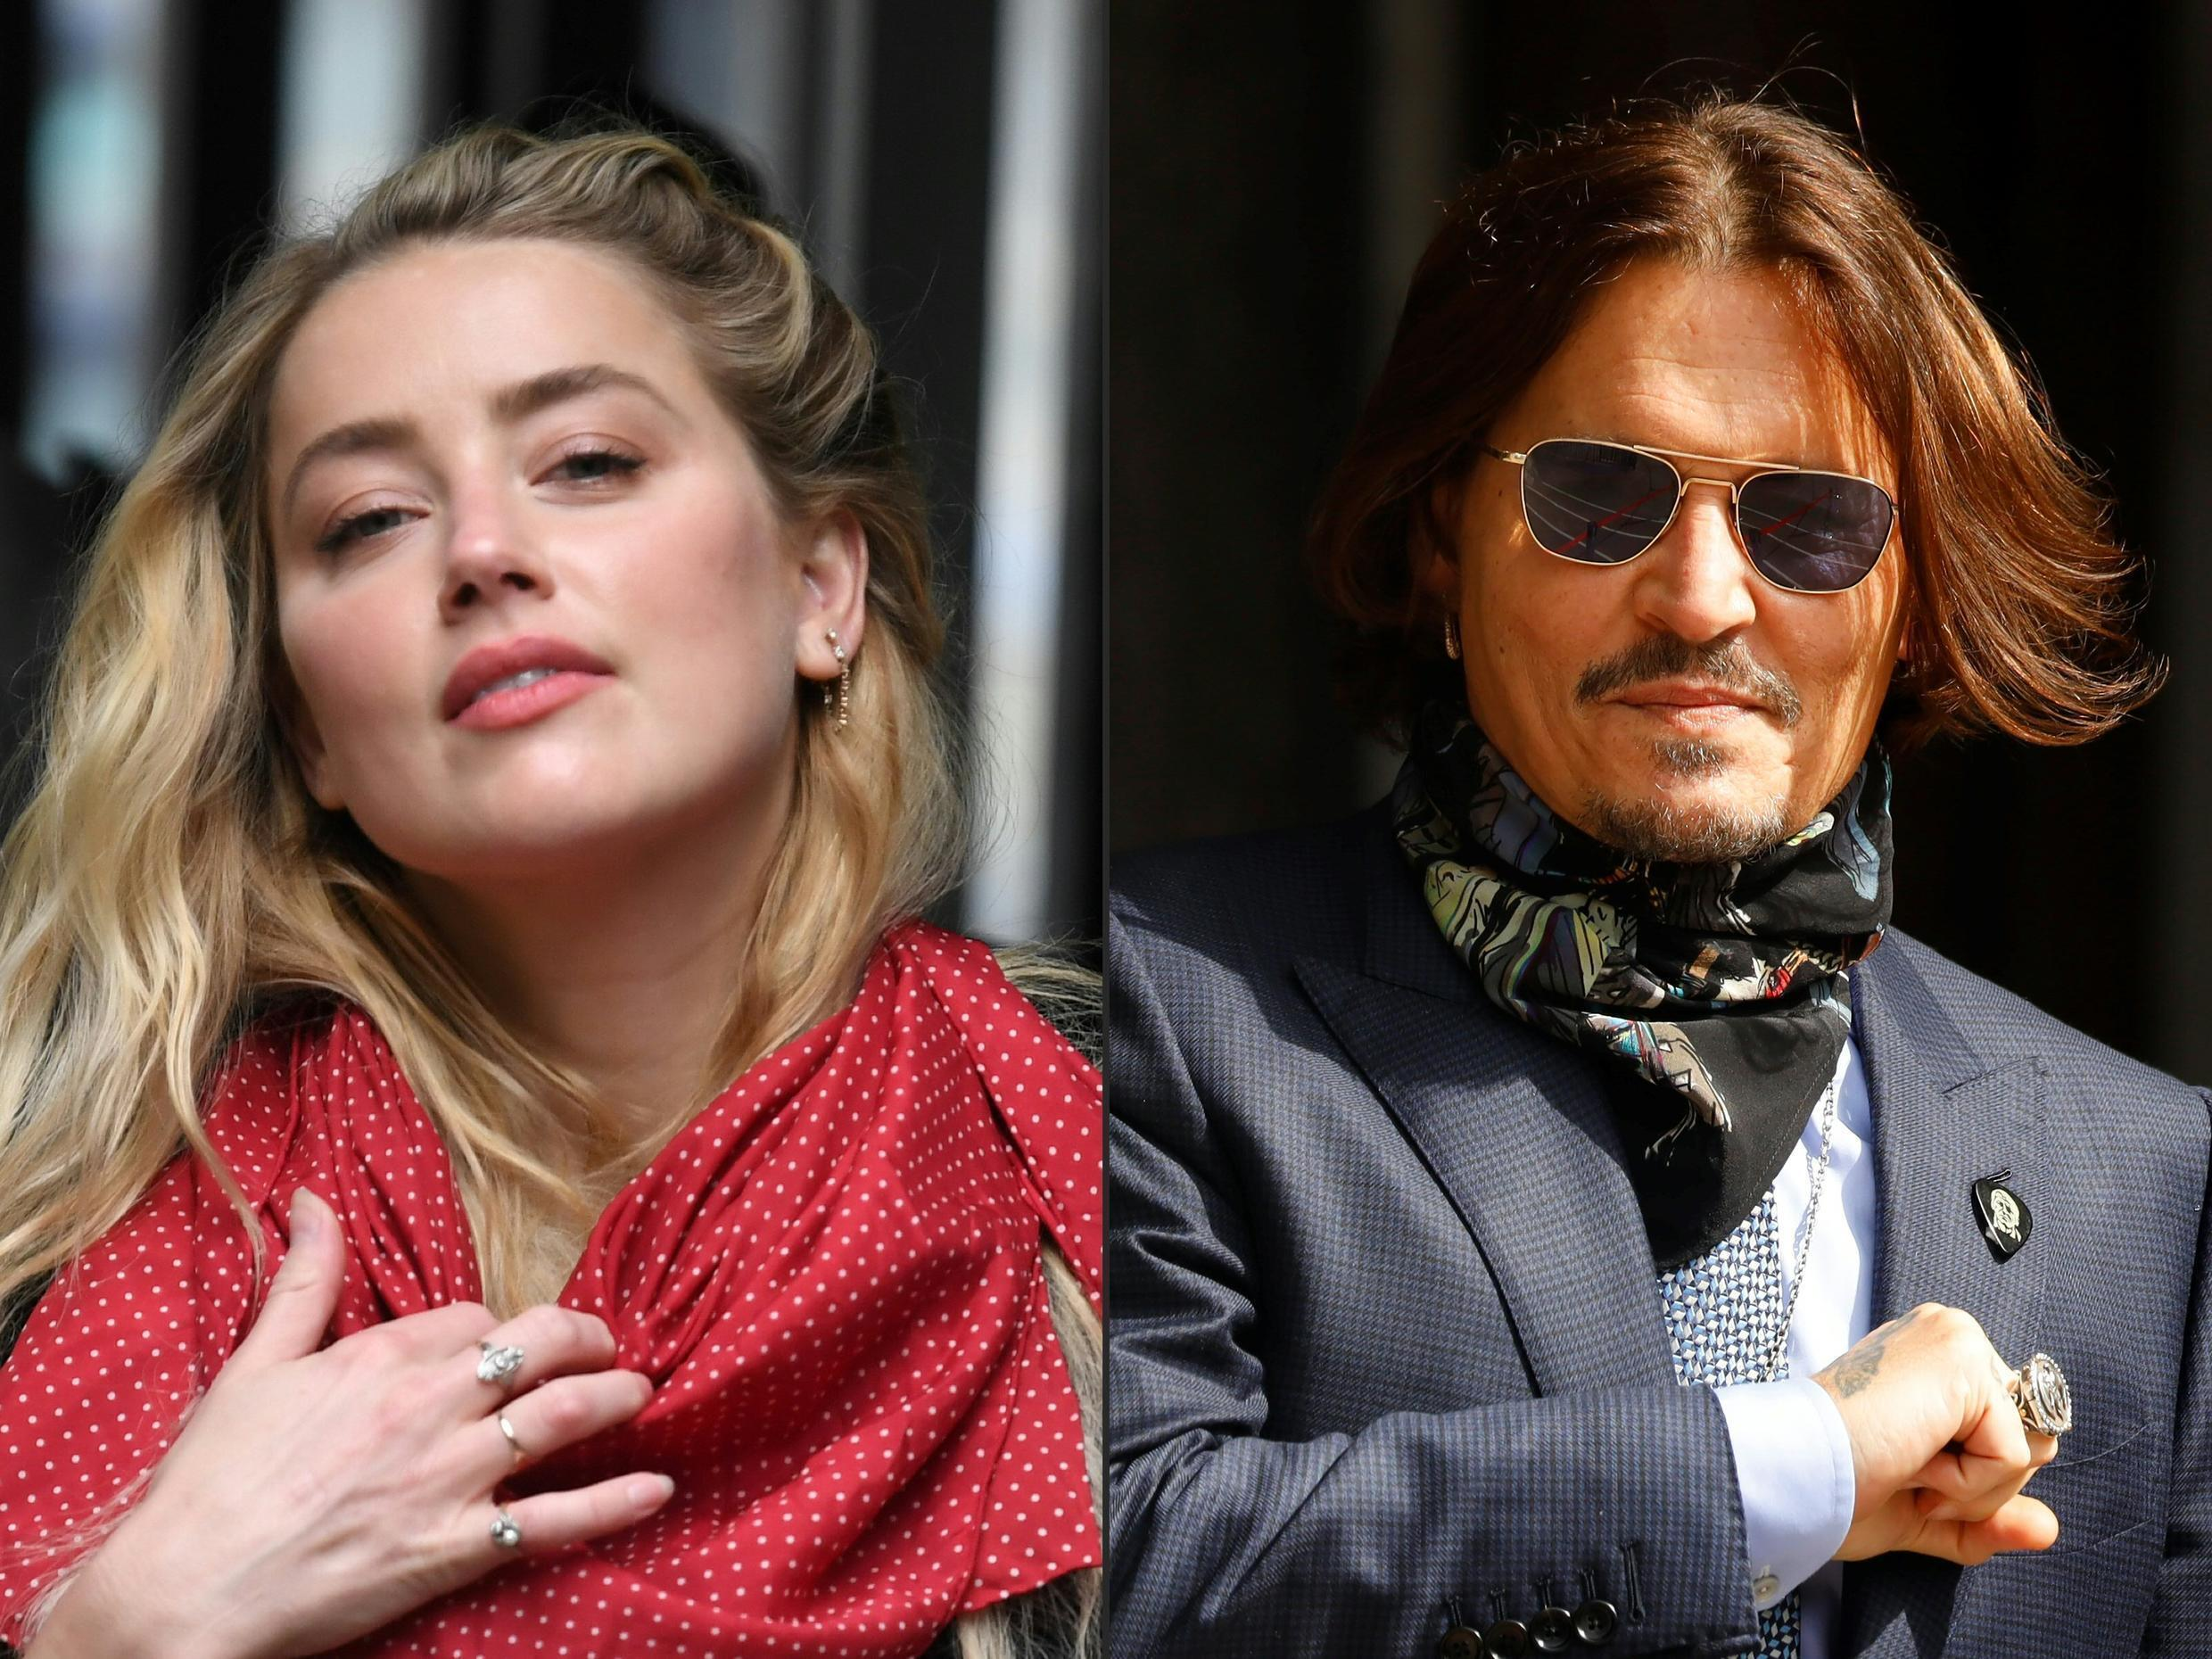 Amber Heard and her former husband Johnny Depp, arriving at court in London on the 23 and 24 July 2020, respectively.